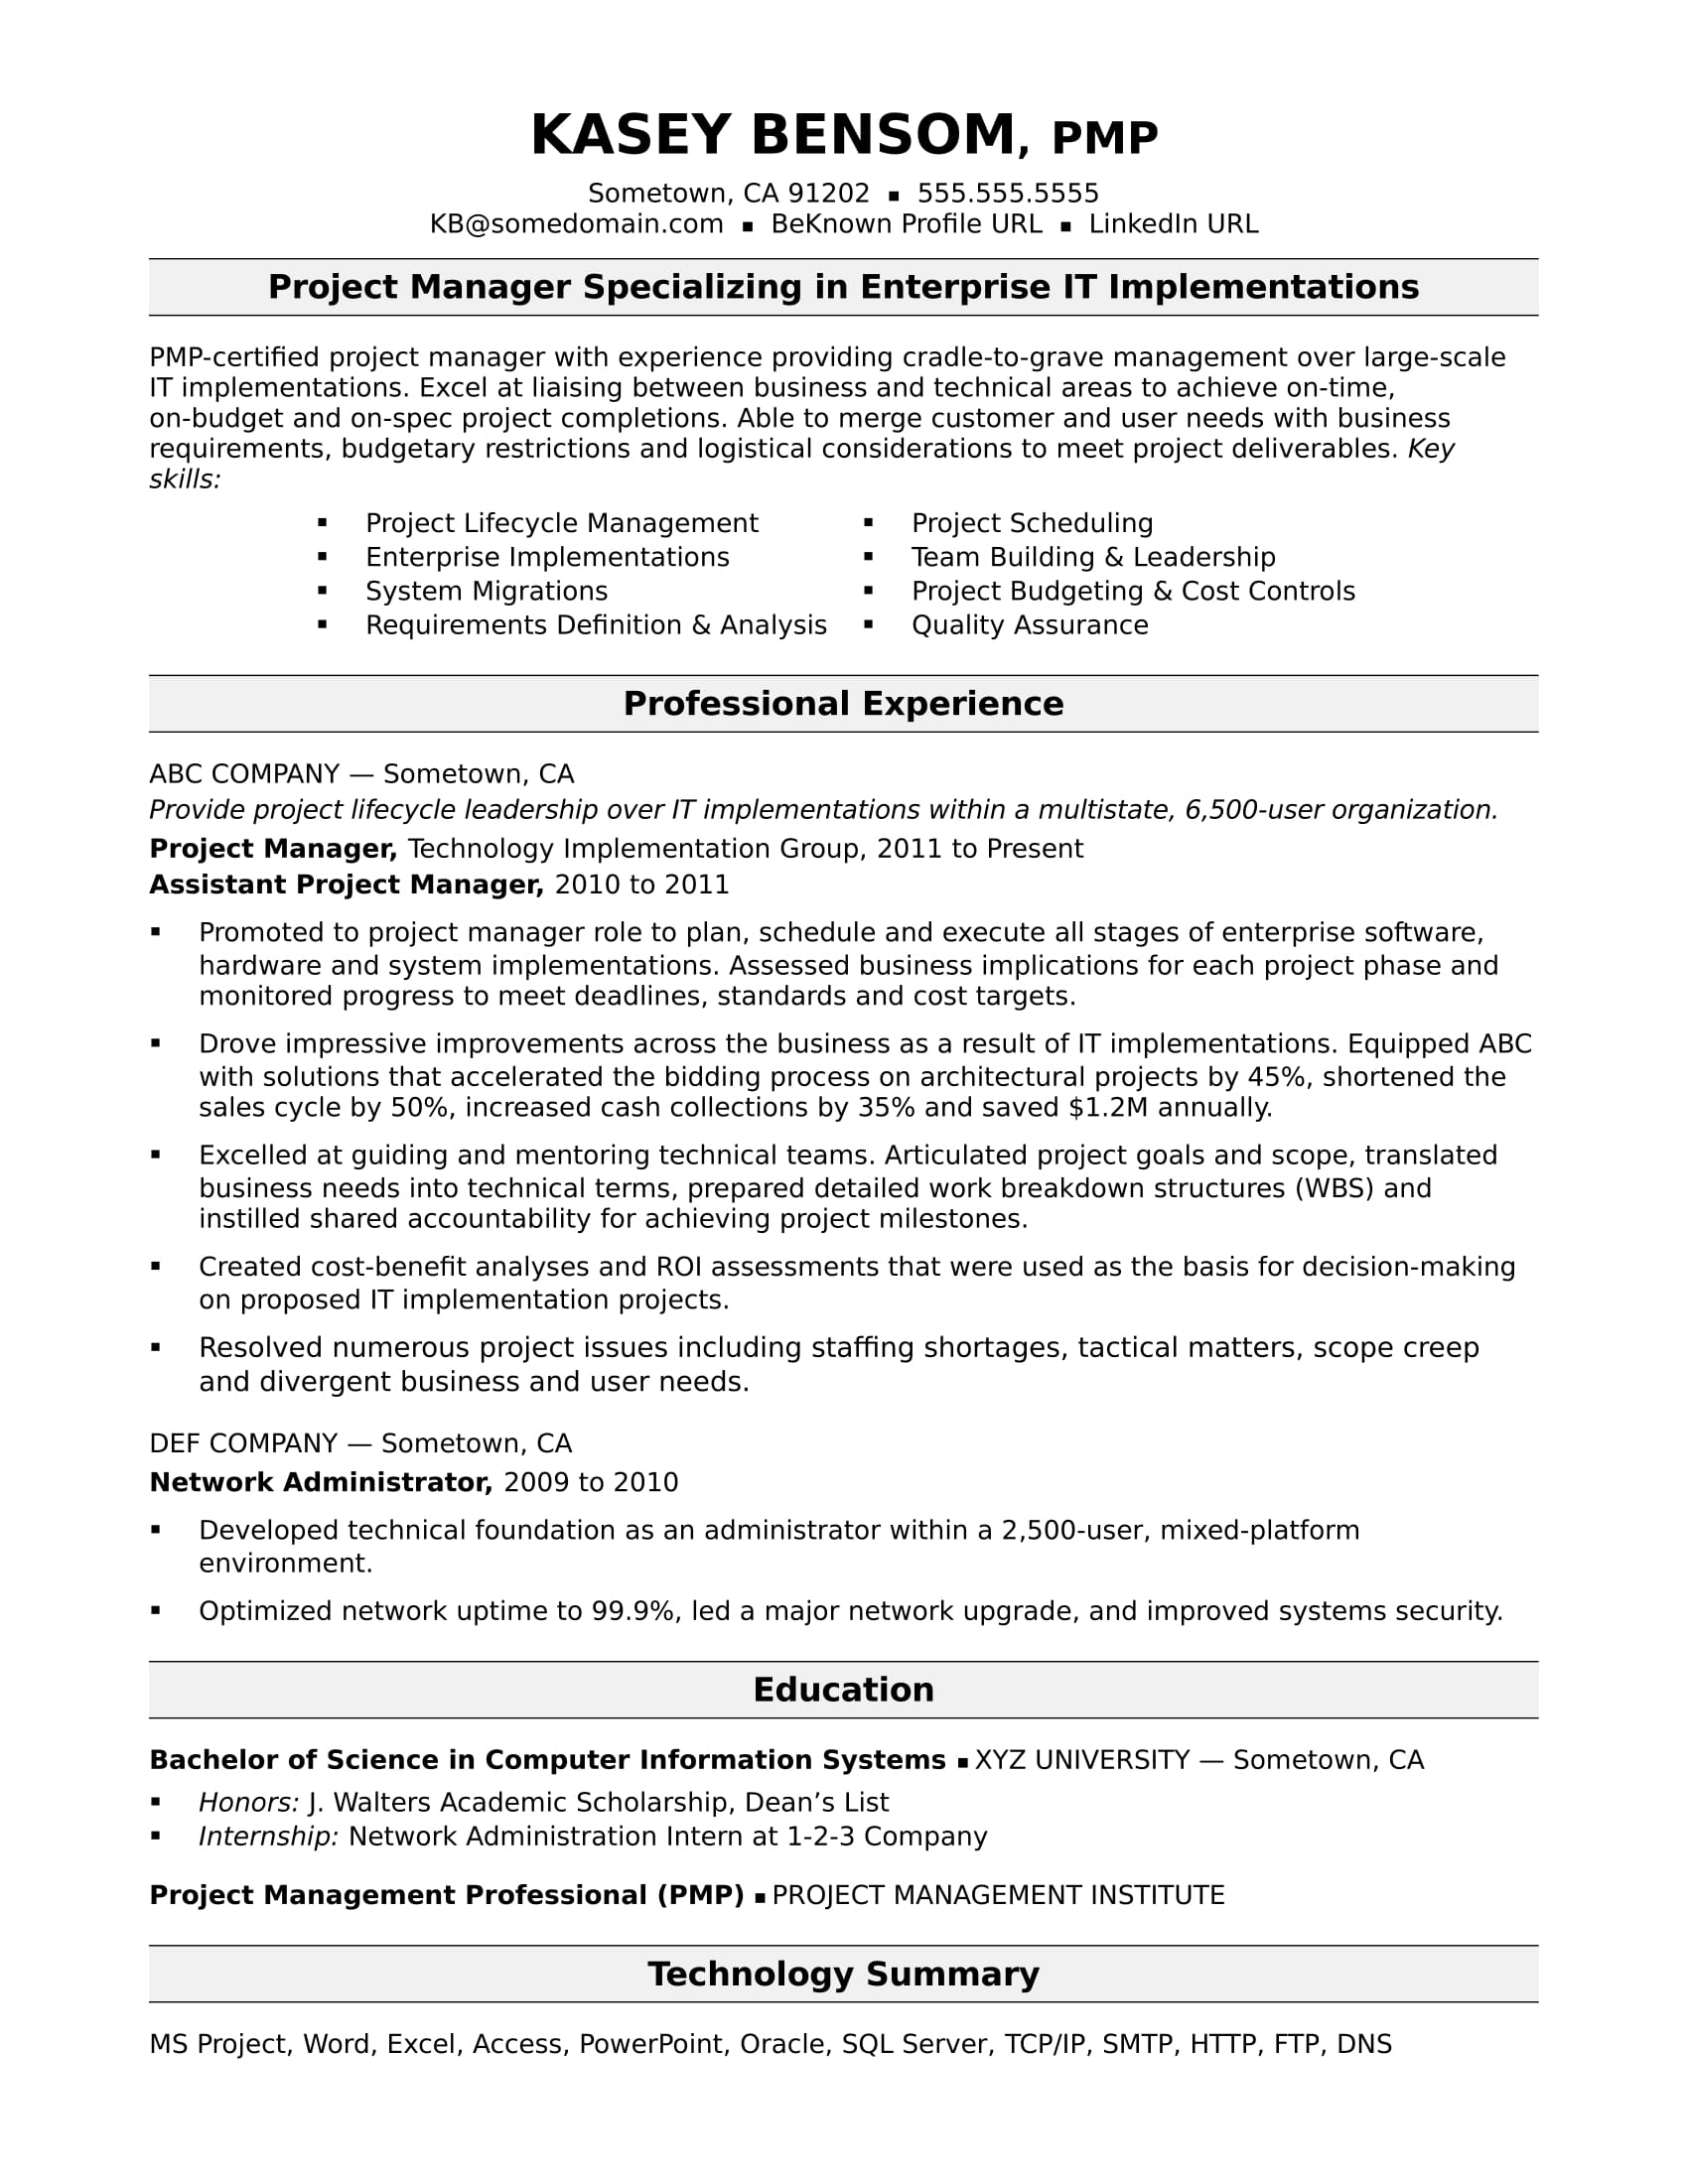 sample resume for midlevel it project manager monster security director smart residential Resume Security Director Resume